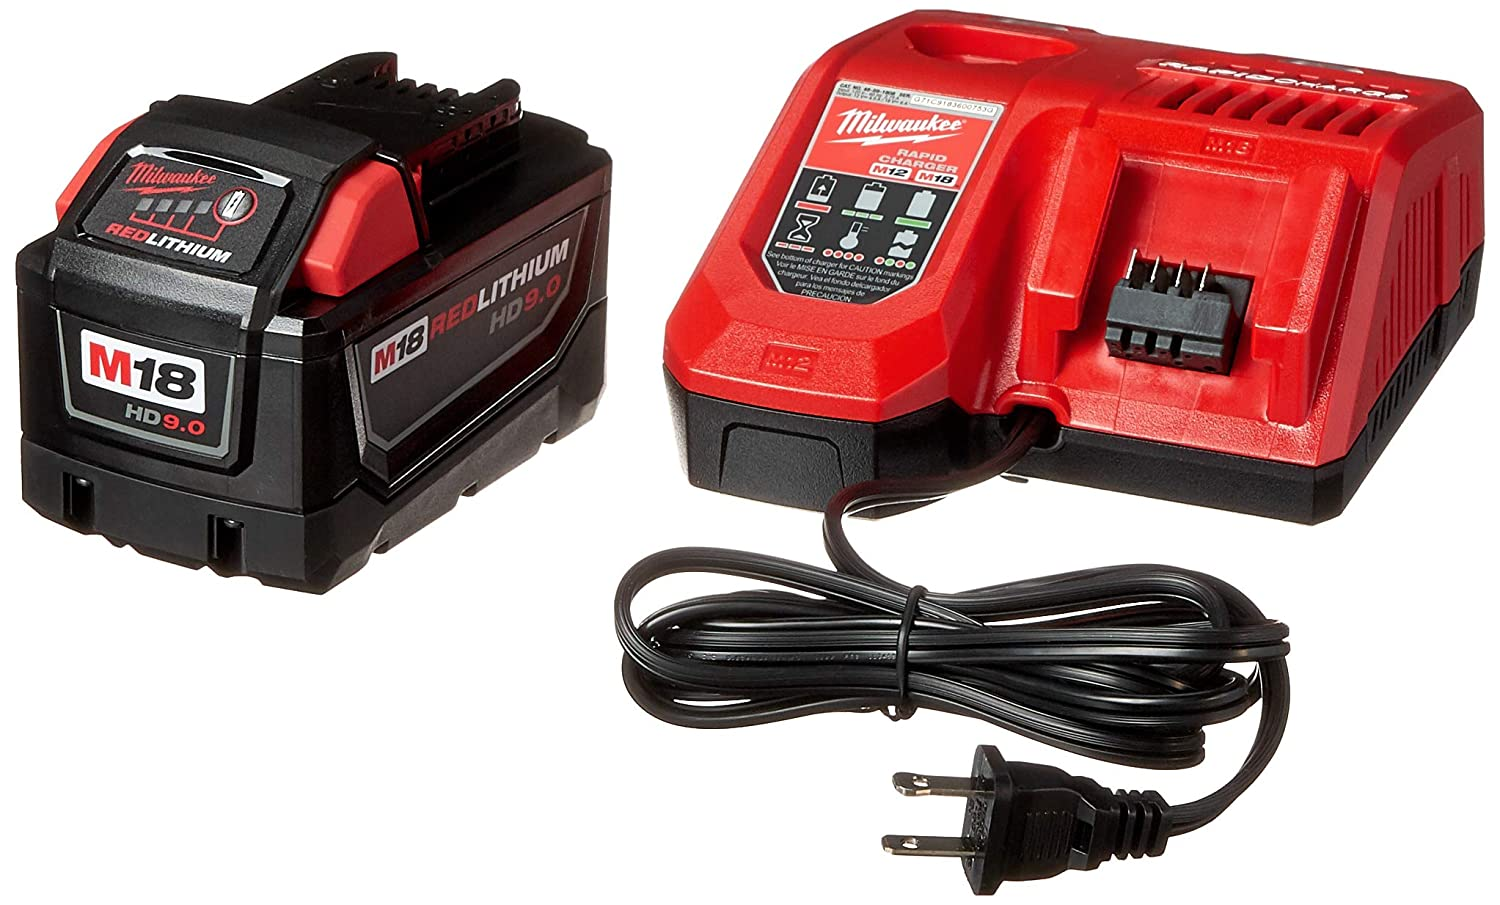 MILWAUKEE ELEC TOOL 48-59-1890 M18 9.0Ah Starter Kit